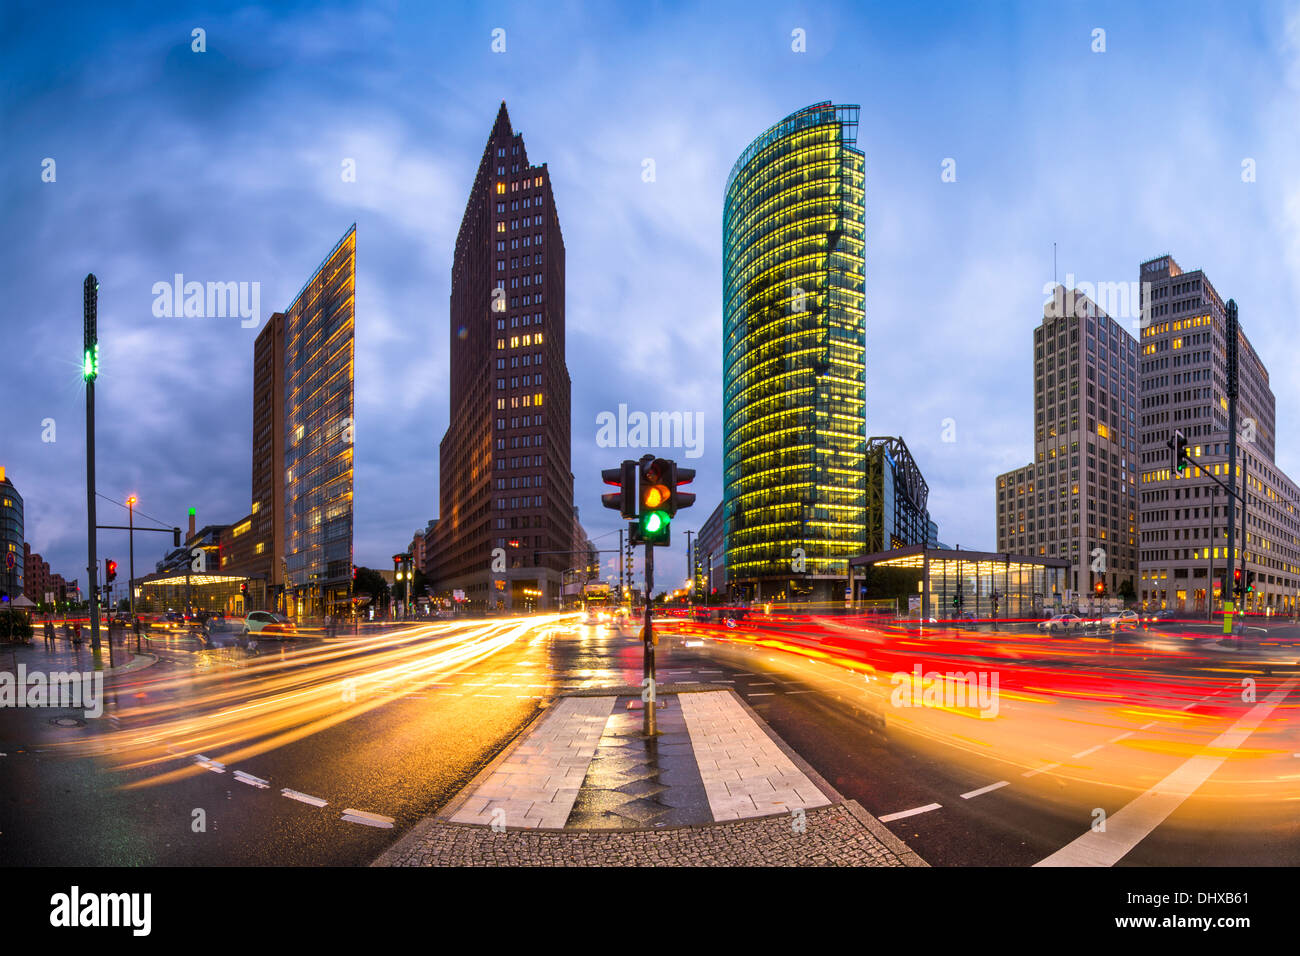 Potsdamer Platz is the financial district of Berlin, Germany. - Stock Image